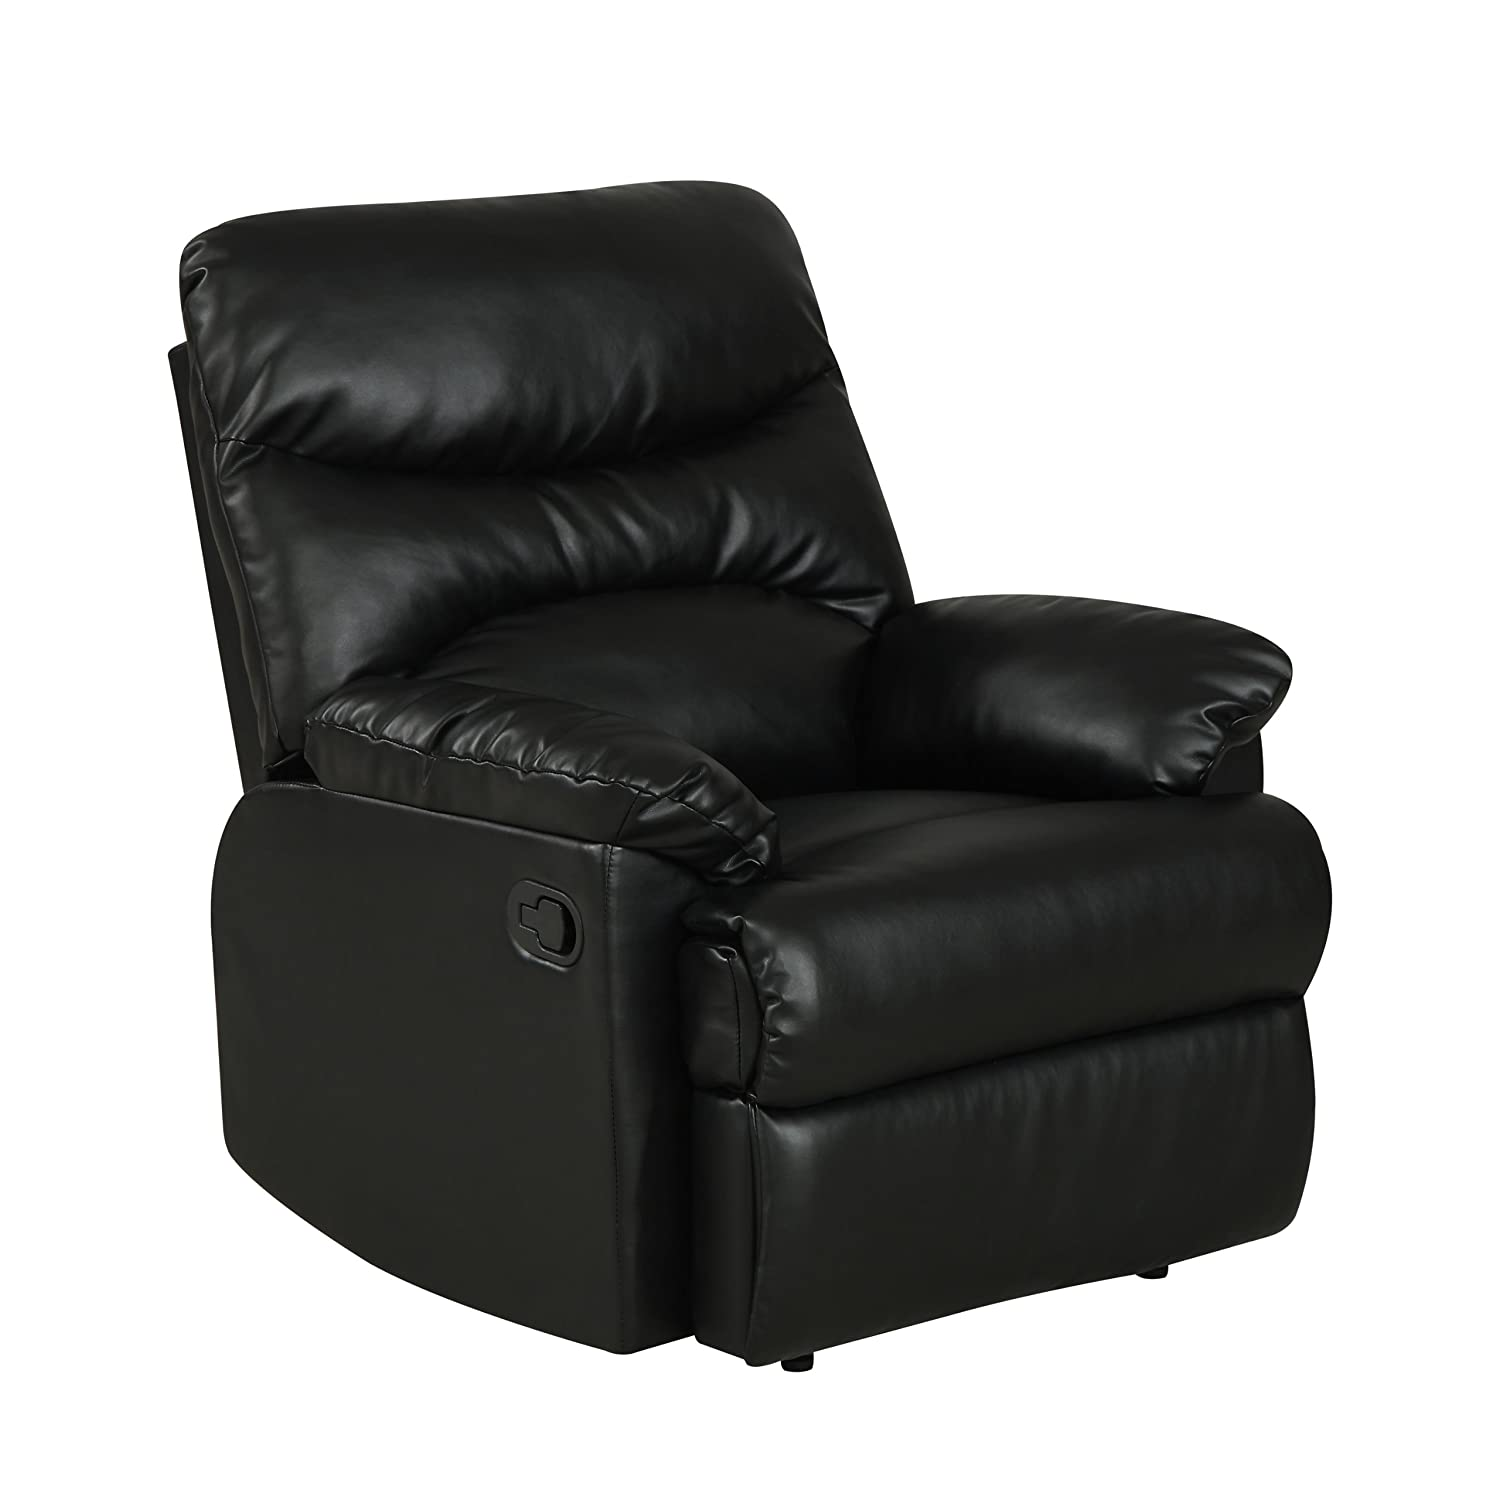 ProLounger Wall Hugger Renu Leather Recliner  sc 1 st  Best Recliners : small black leather recliner - islam-shia.org